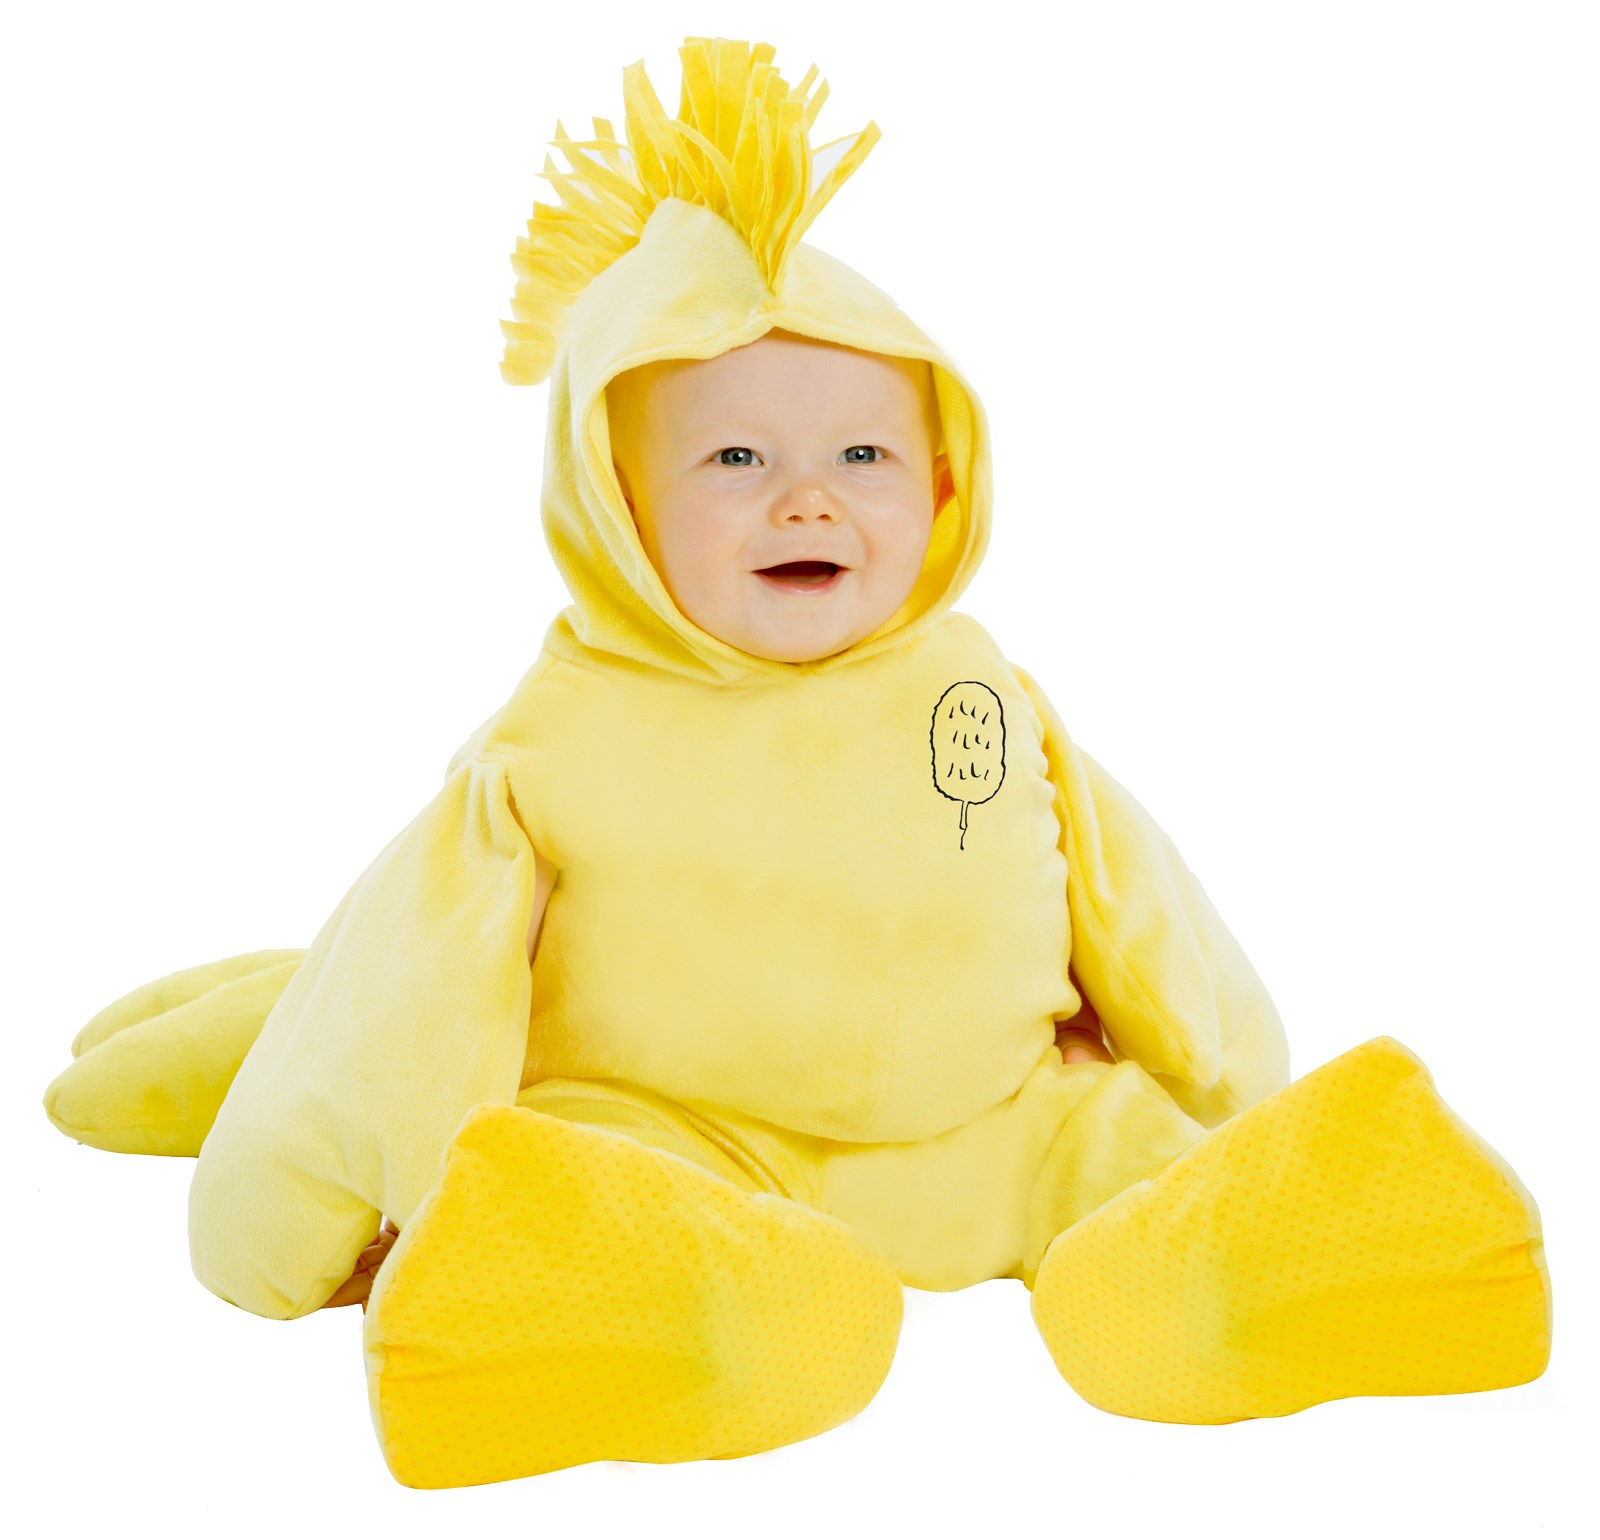 Peanuts: Plush Woodstock Jumpsuit Costume for Toddlers